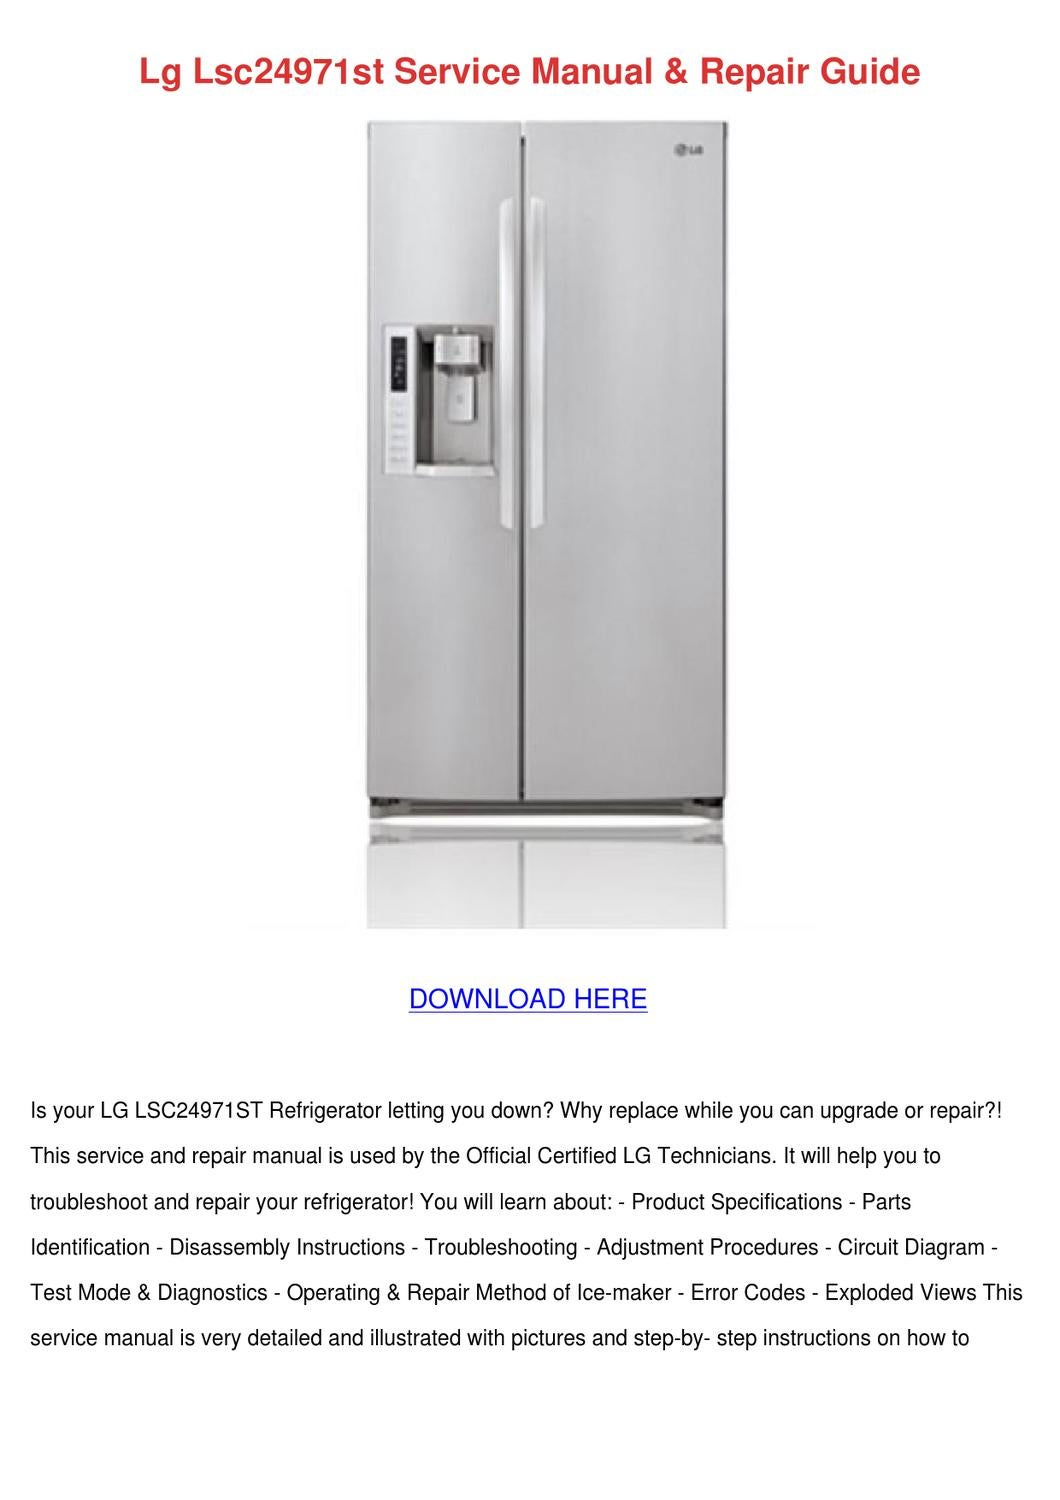 Lg Lsc24971st Service Manual Repair Guide By Beckie Aina Issuu Refrigerator Schematics